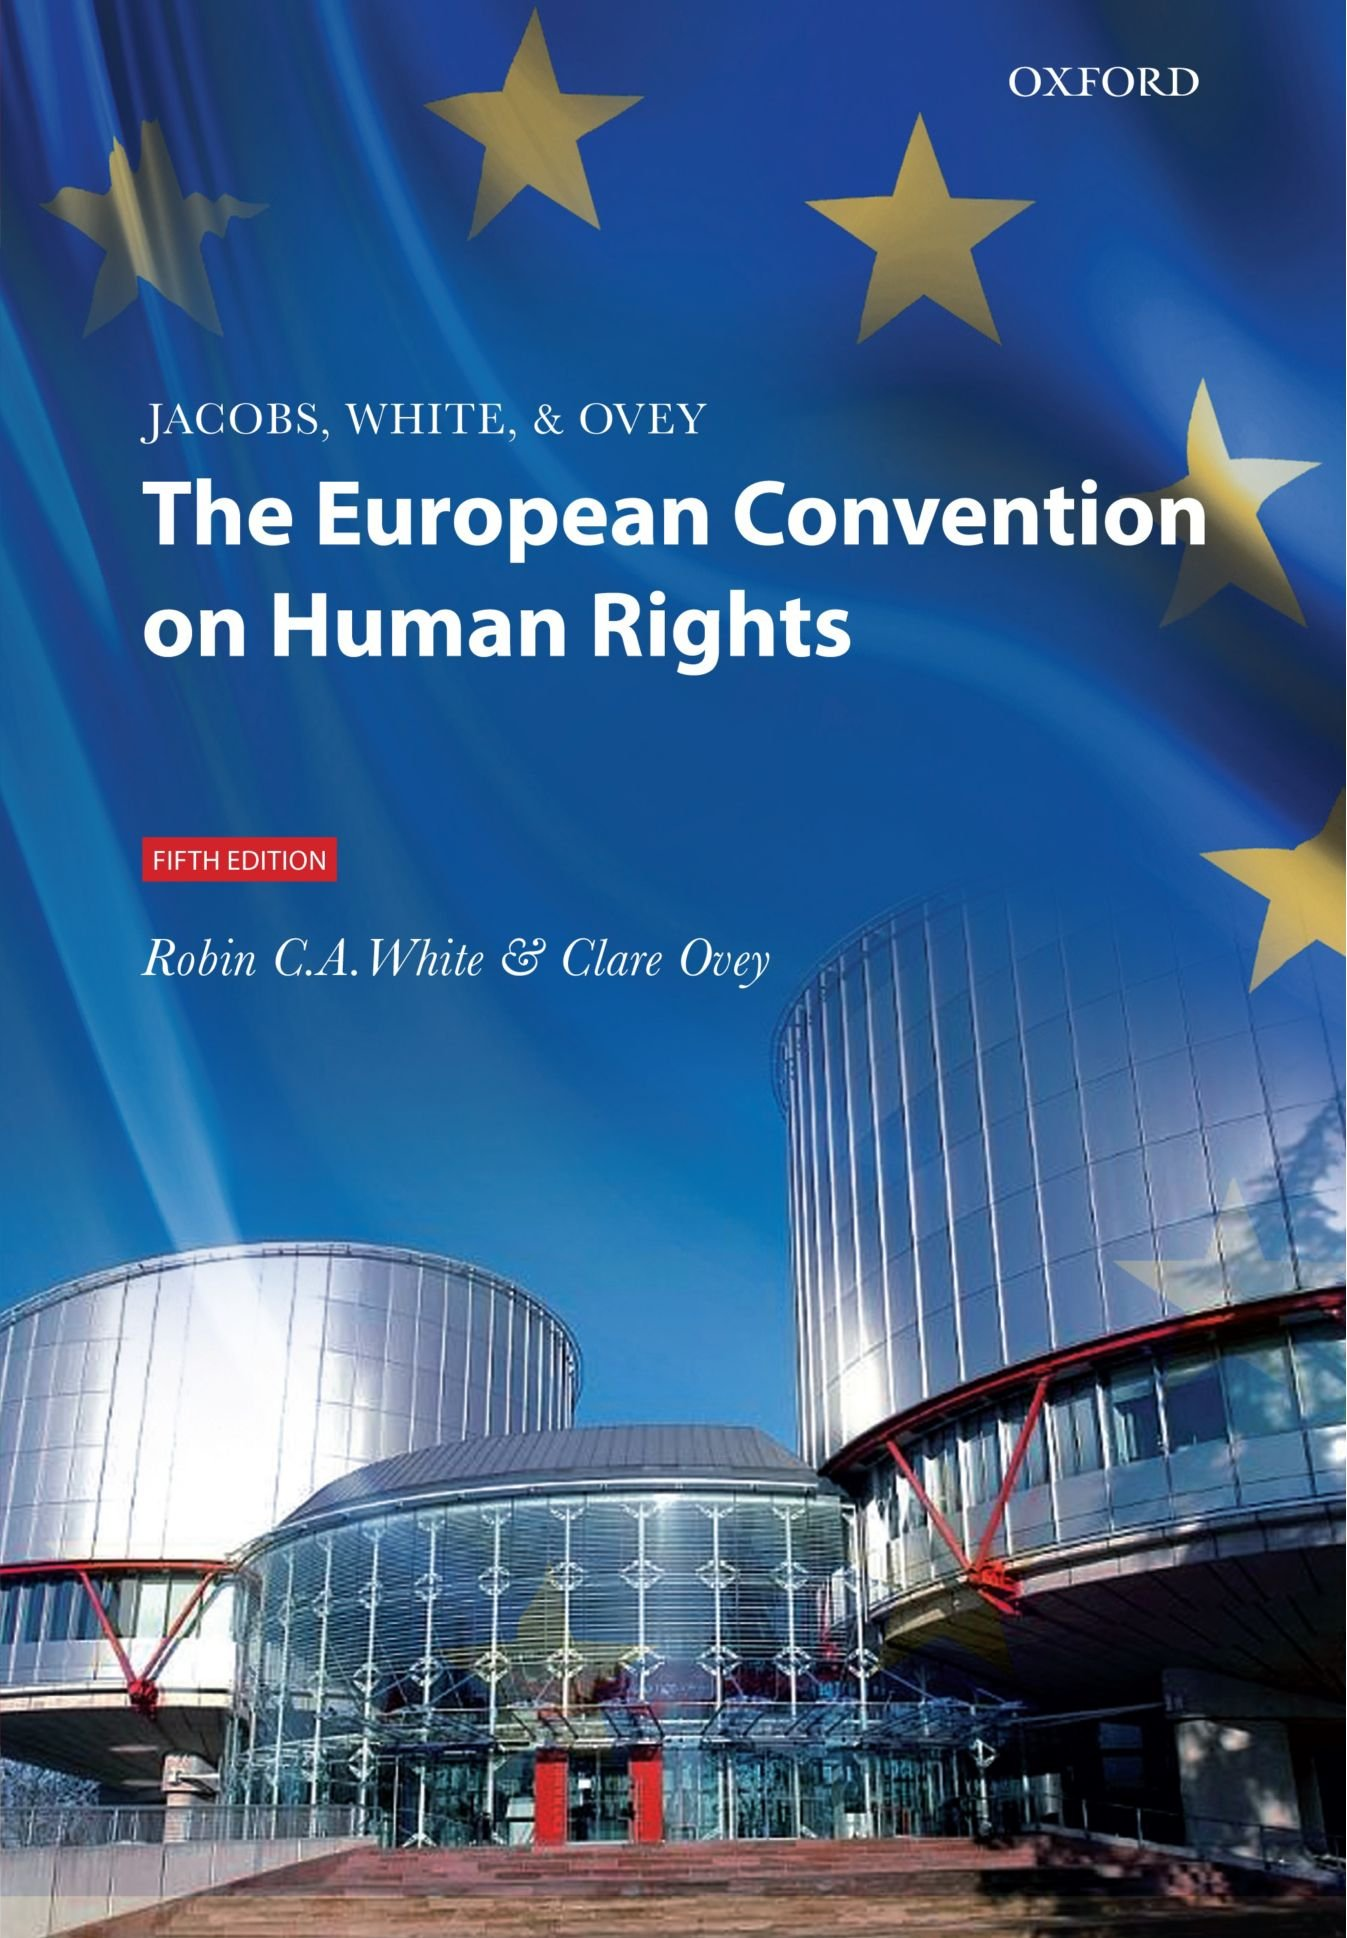 Jacobs, White & Ovey: The European Convention on Human Rights (Inglese) Copertina flessibile – 6 mag 2010 Robin C A White Clare Ovey OUP Oxford 0199543380